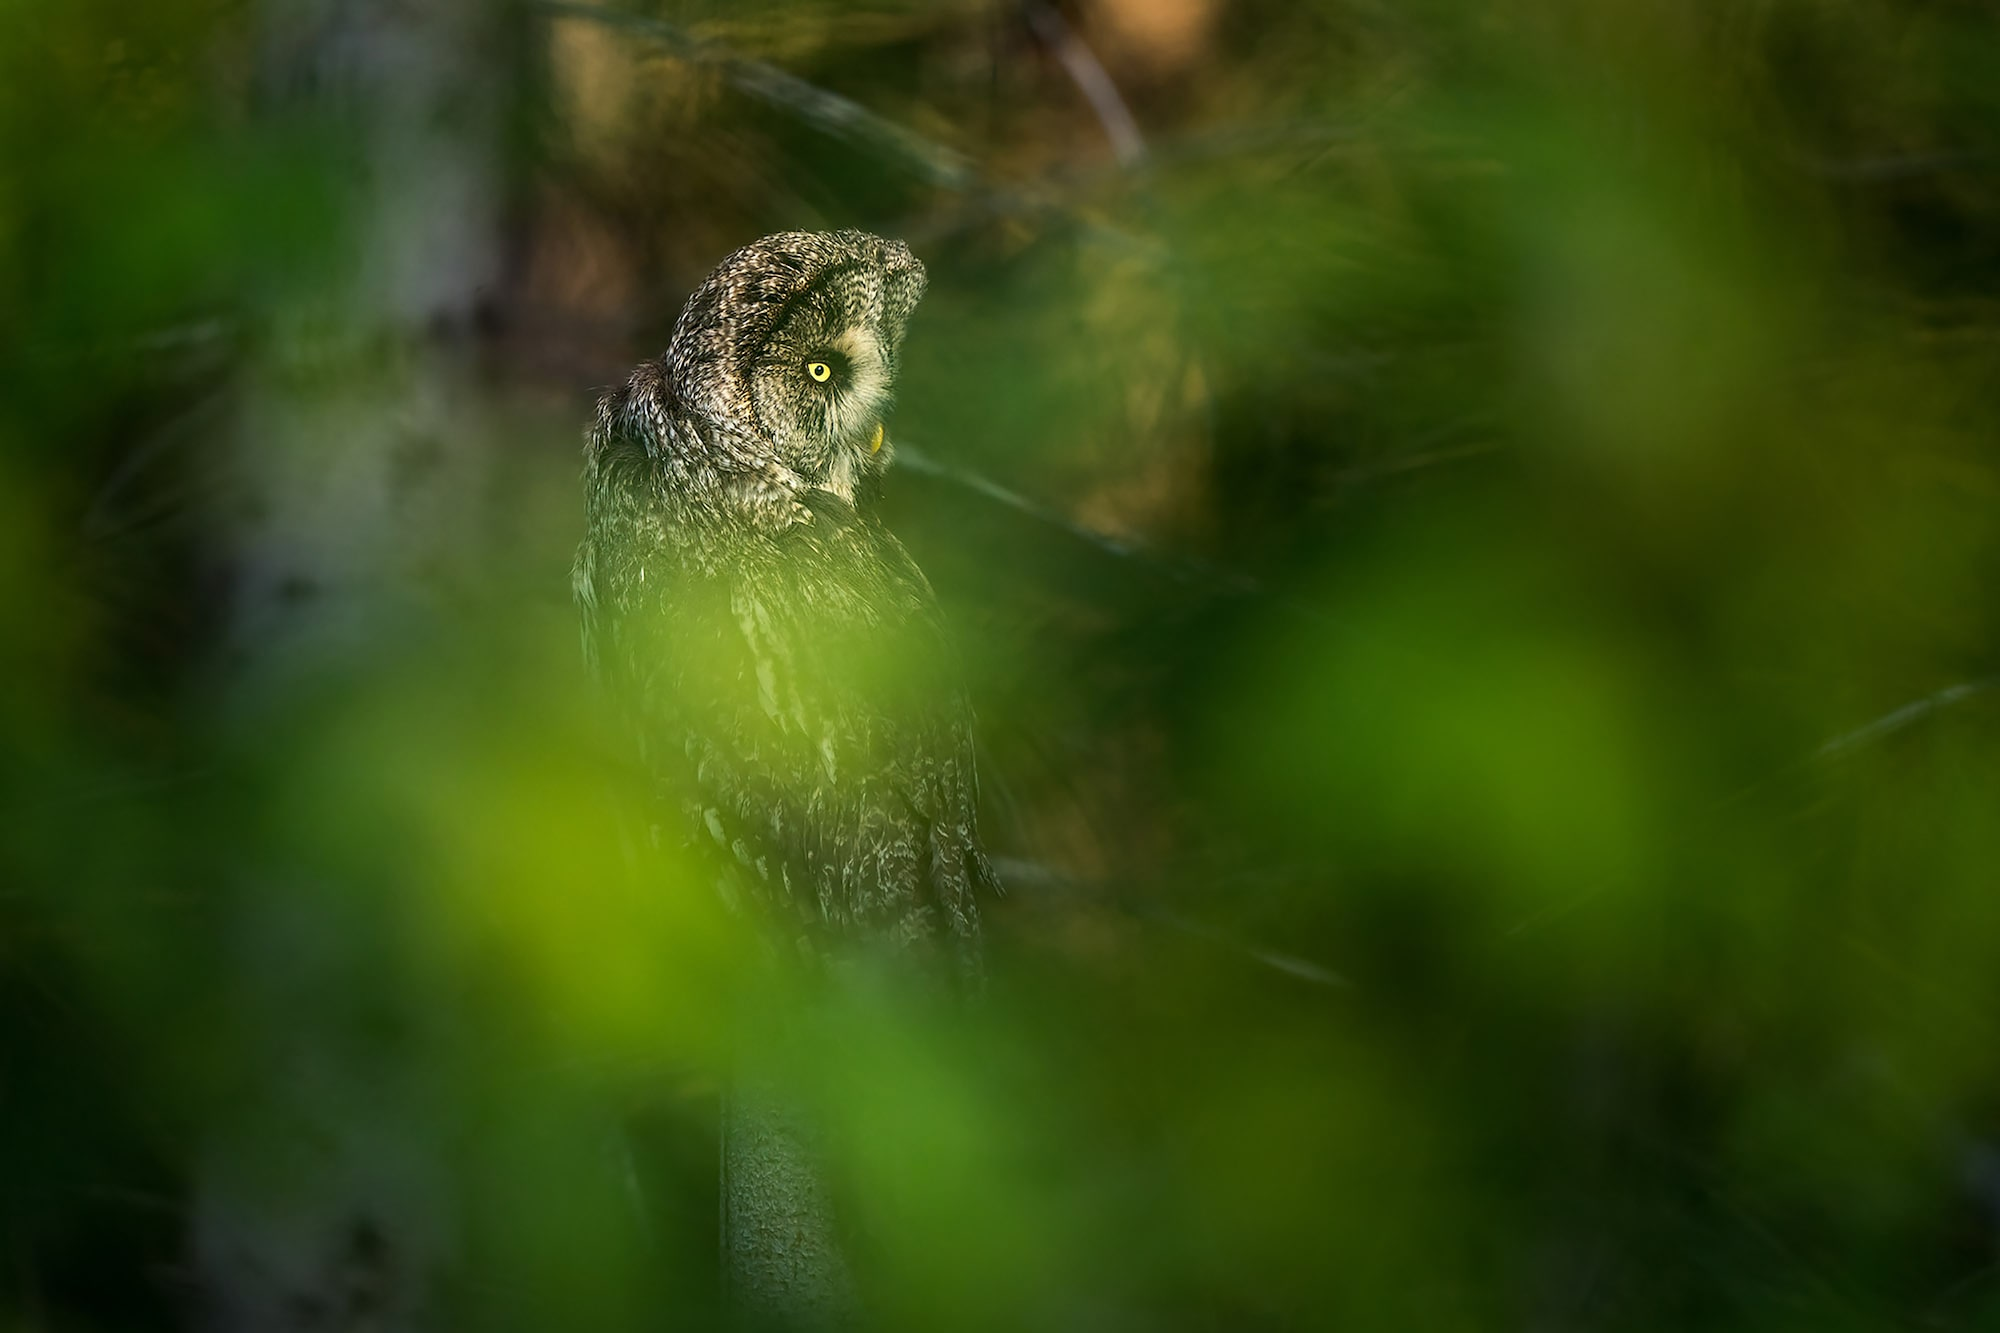 floris smeets sony alpha 9 grey owl sitting in a tree hidden by foliage